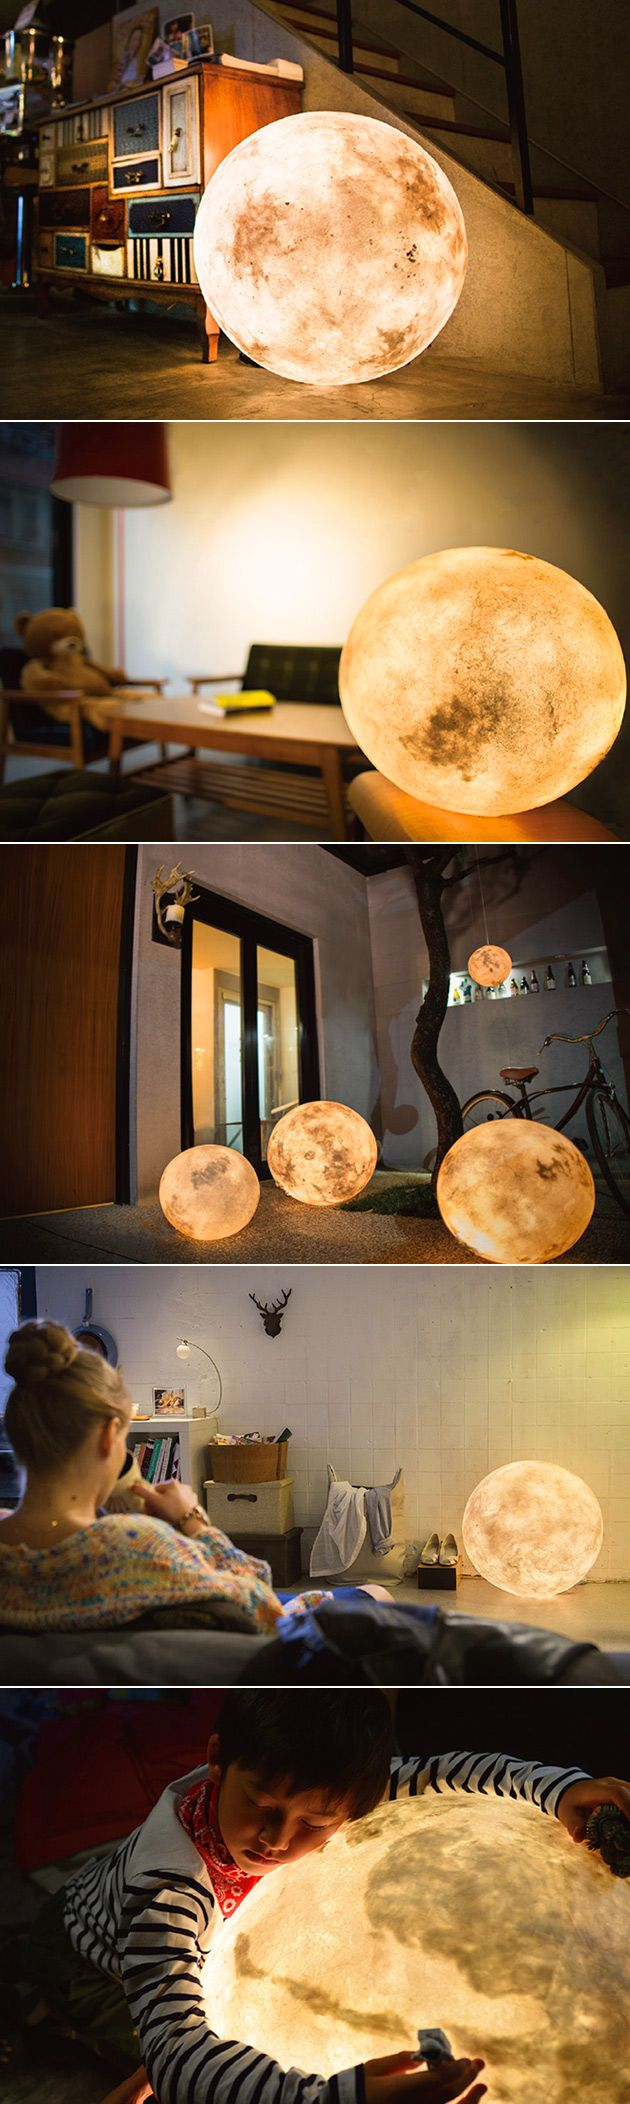 Bogenlampe Poco Enter Luna A Little Ball Of Light Designed To Look Like The